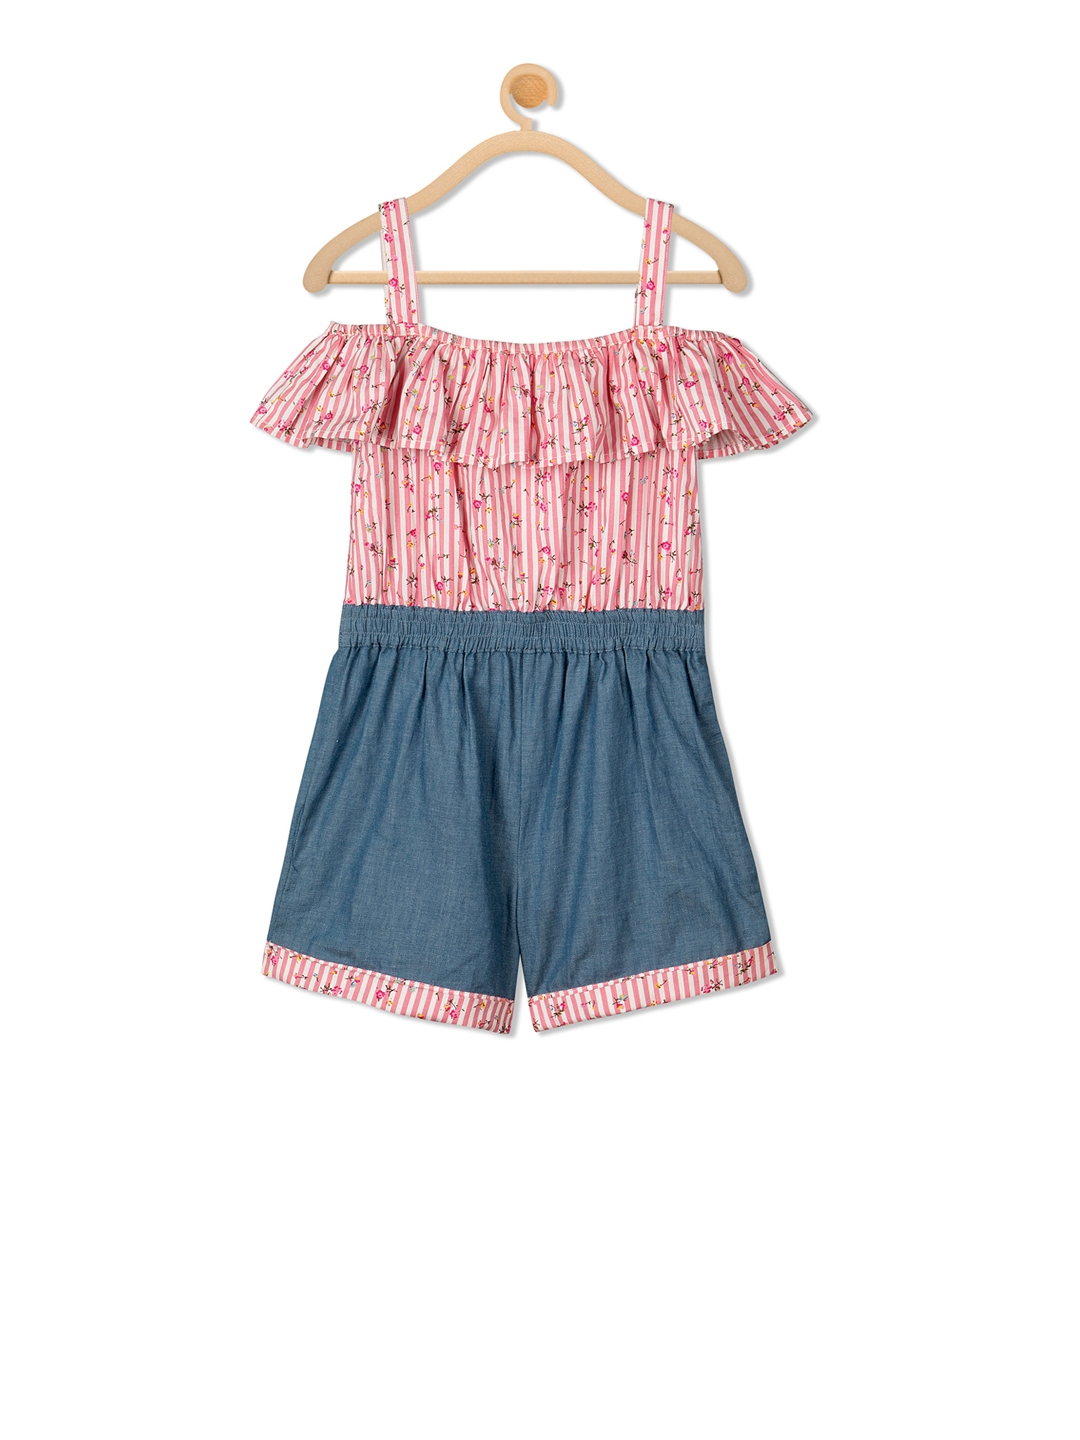 733aa4d2500 Buy Budding Bees Girls Pink   Grey Printed Playsuit - Jumpsuit for ...